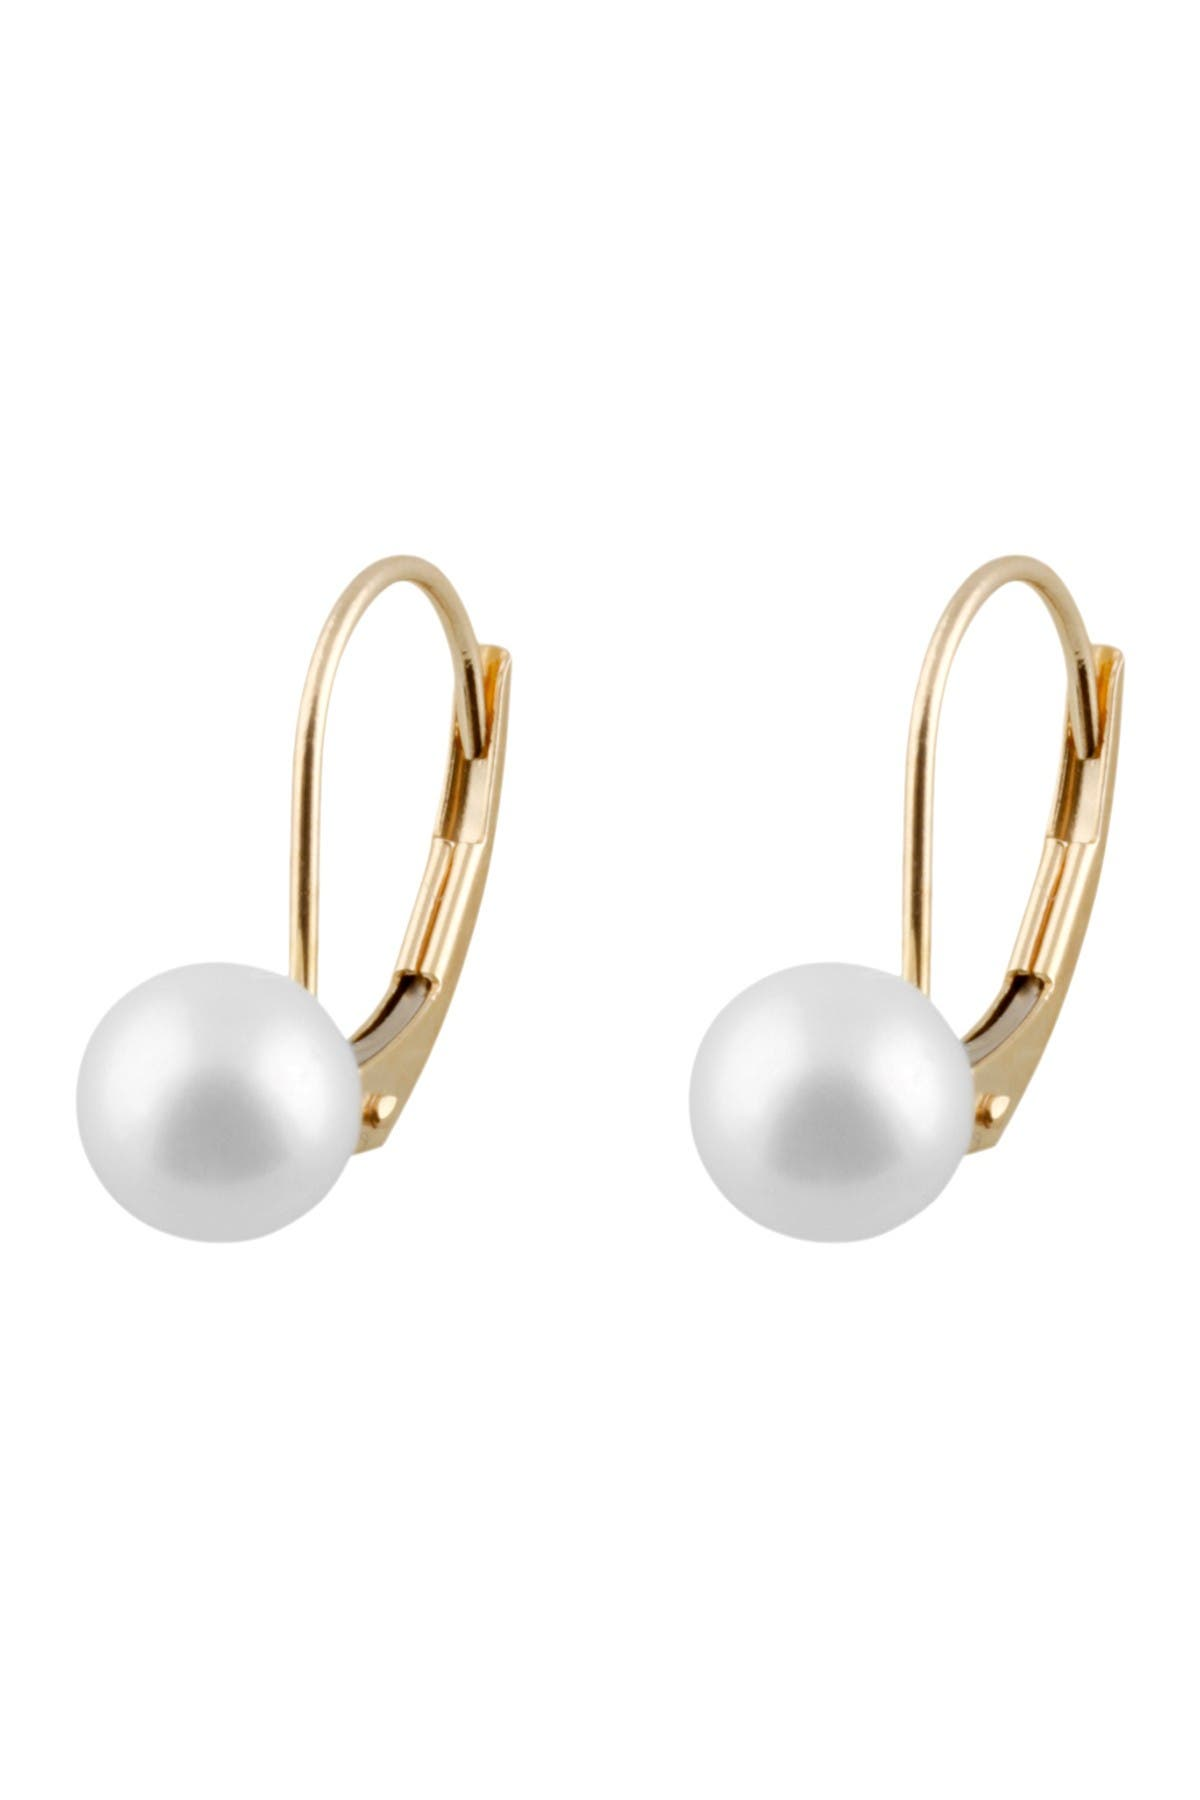 Image of Splendid Pearls 14K Yellow Gold 6-6.5mm Cultured Freshwater Pearl Earrings